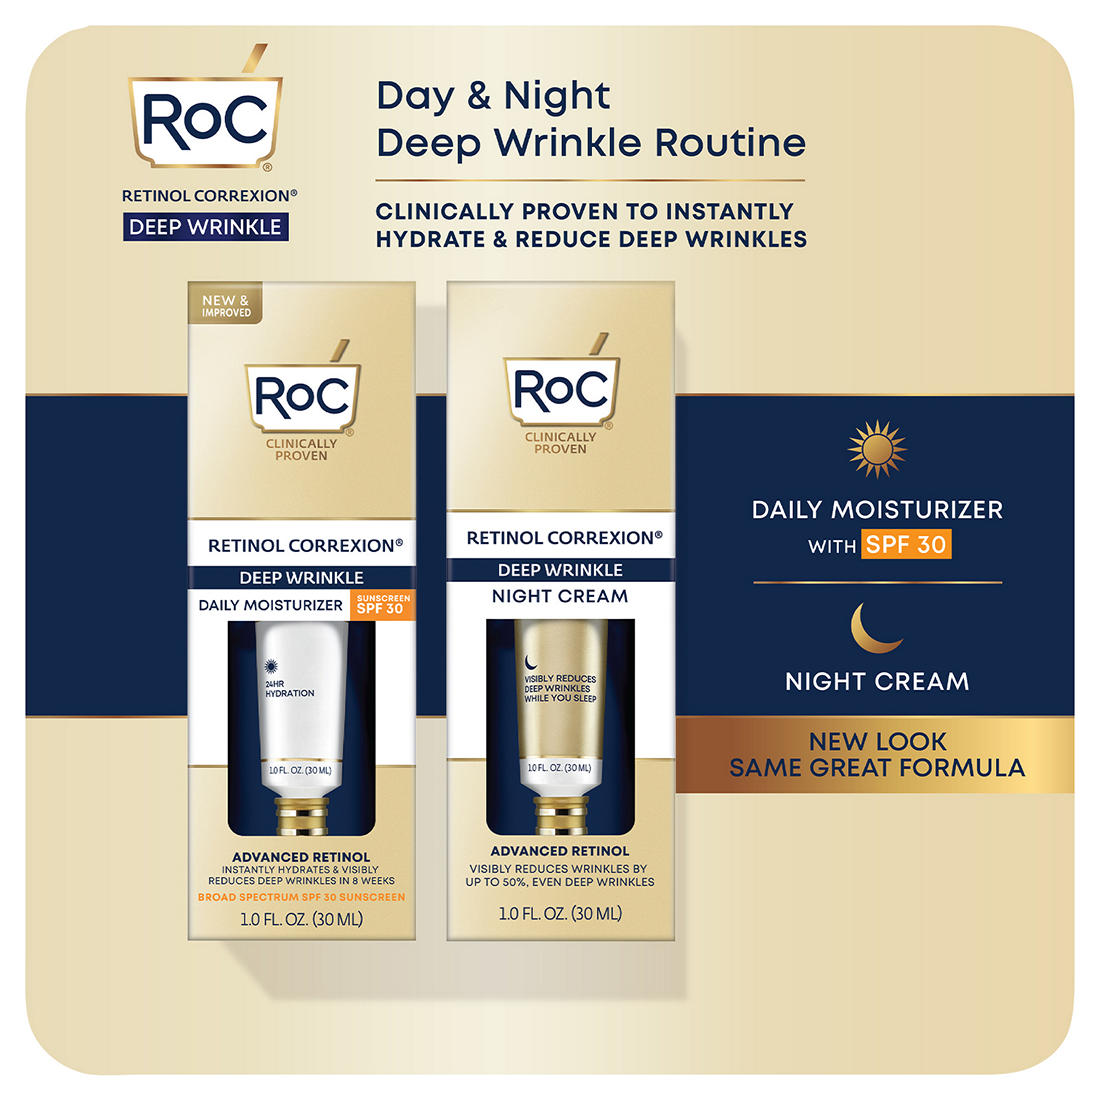 Roc Retinol Correxion Deep Wrinkle Treatment Daily Moisturizer